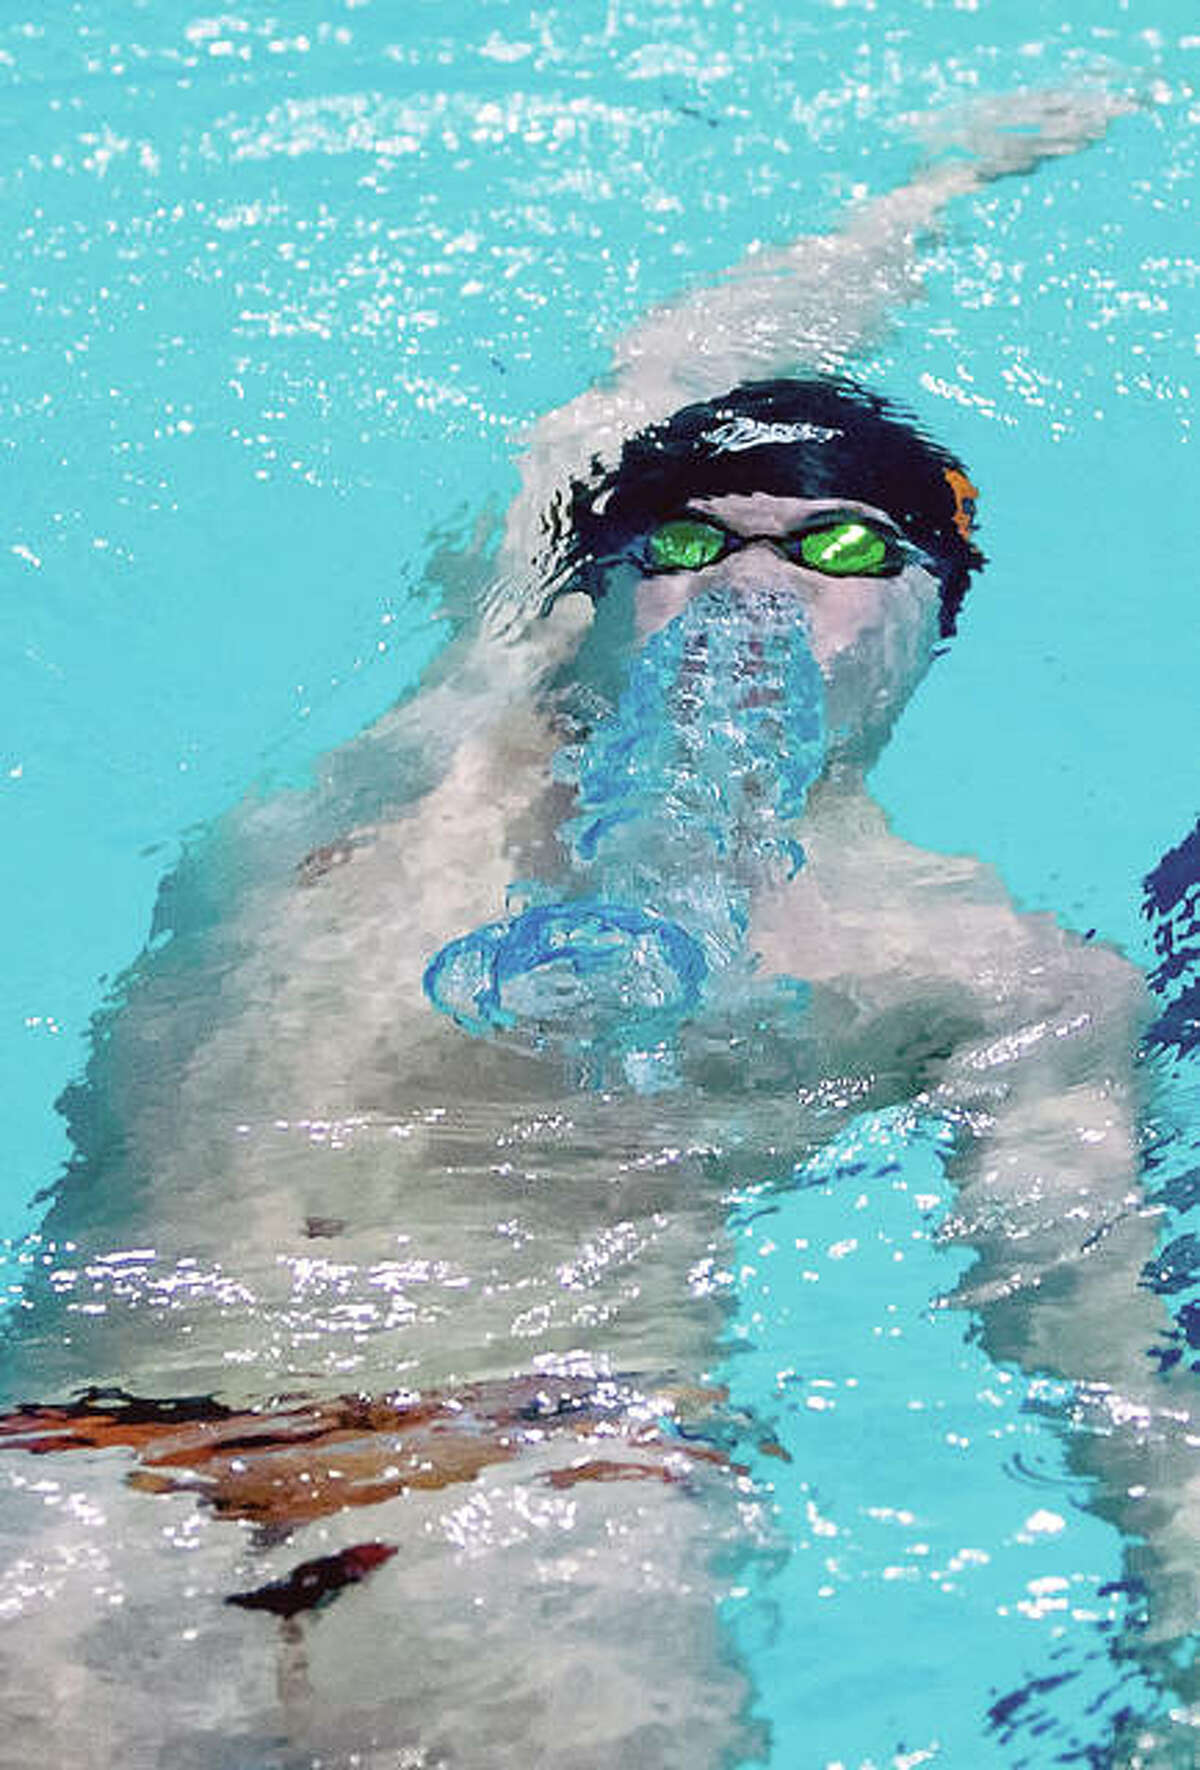 Edwardsville's Noah May comes up after the start of the 100-yard backstroke in dual meet action against Springfield Sacred Heart-Griffin Thursday night at the Chuck Fruit Aquatic Center. May won the event and the Tigers rolled to a 139-38 victory.